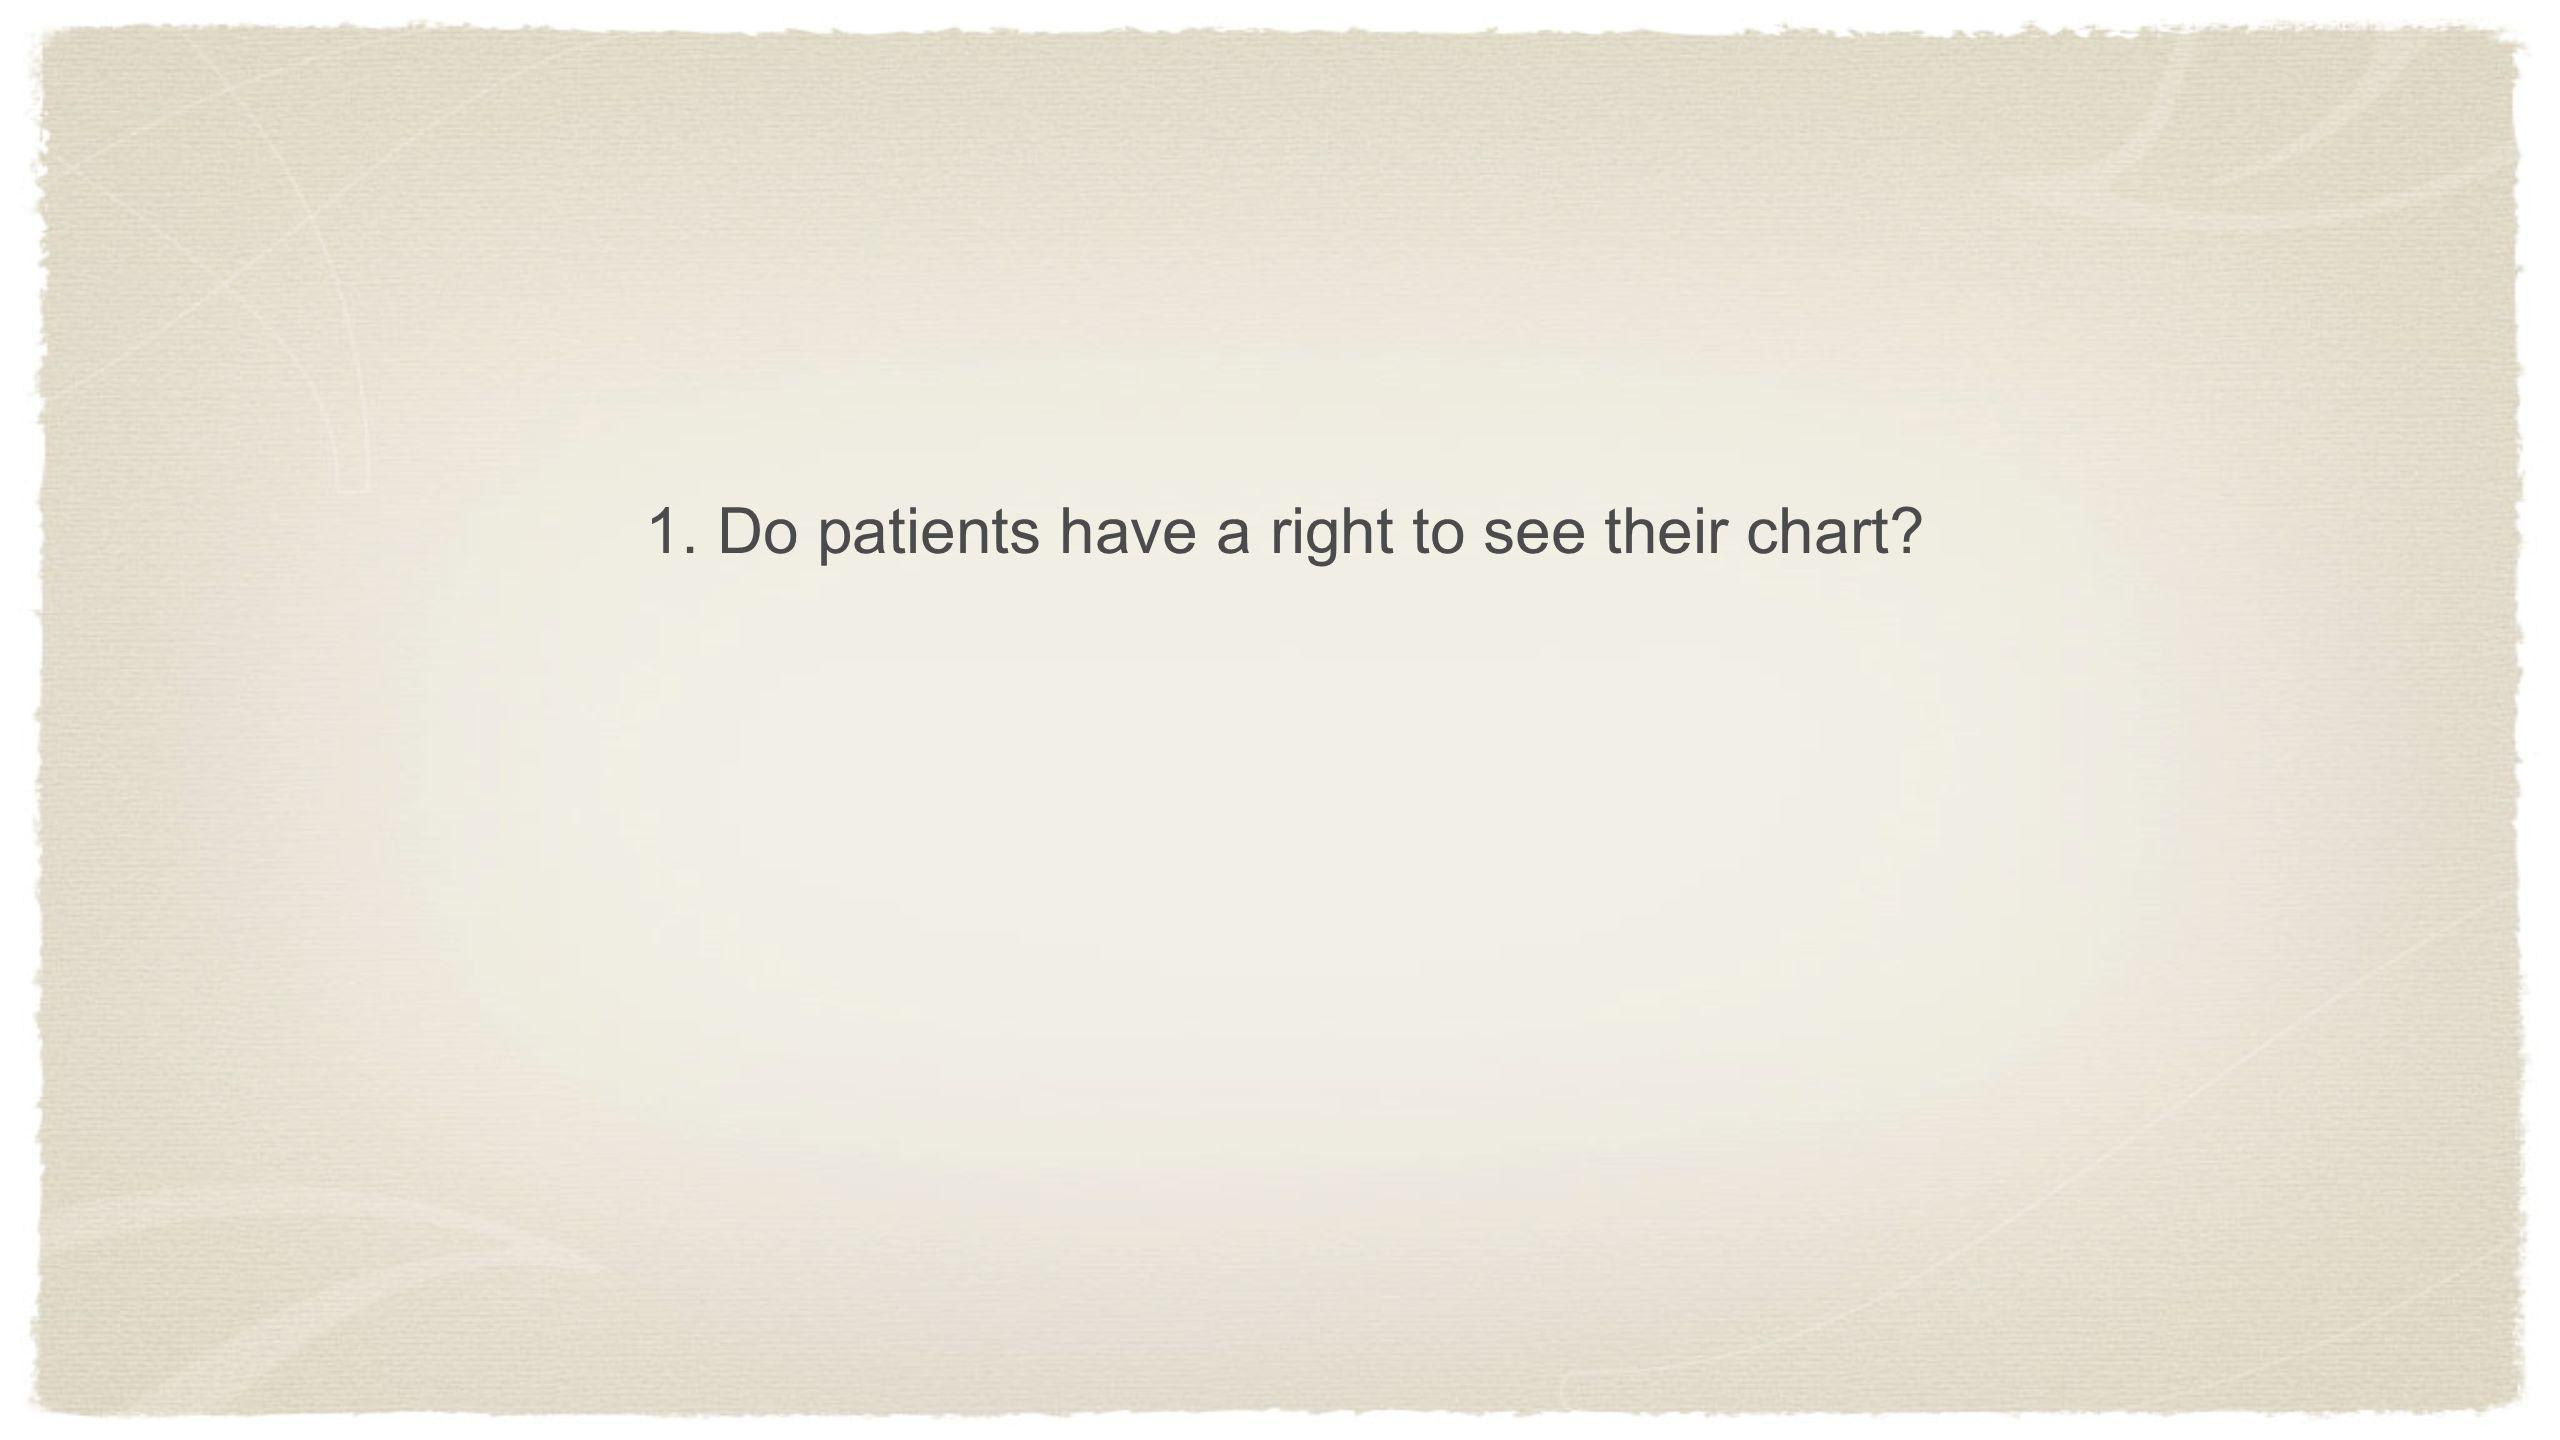 1. Do patients have a right to see their chart